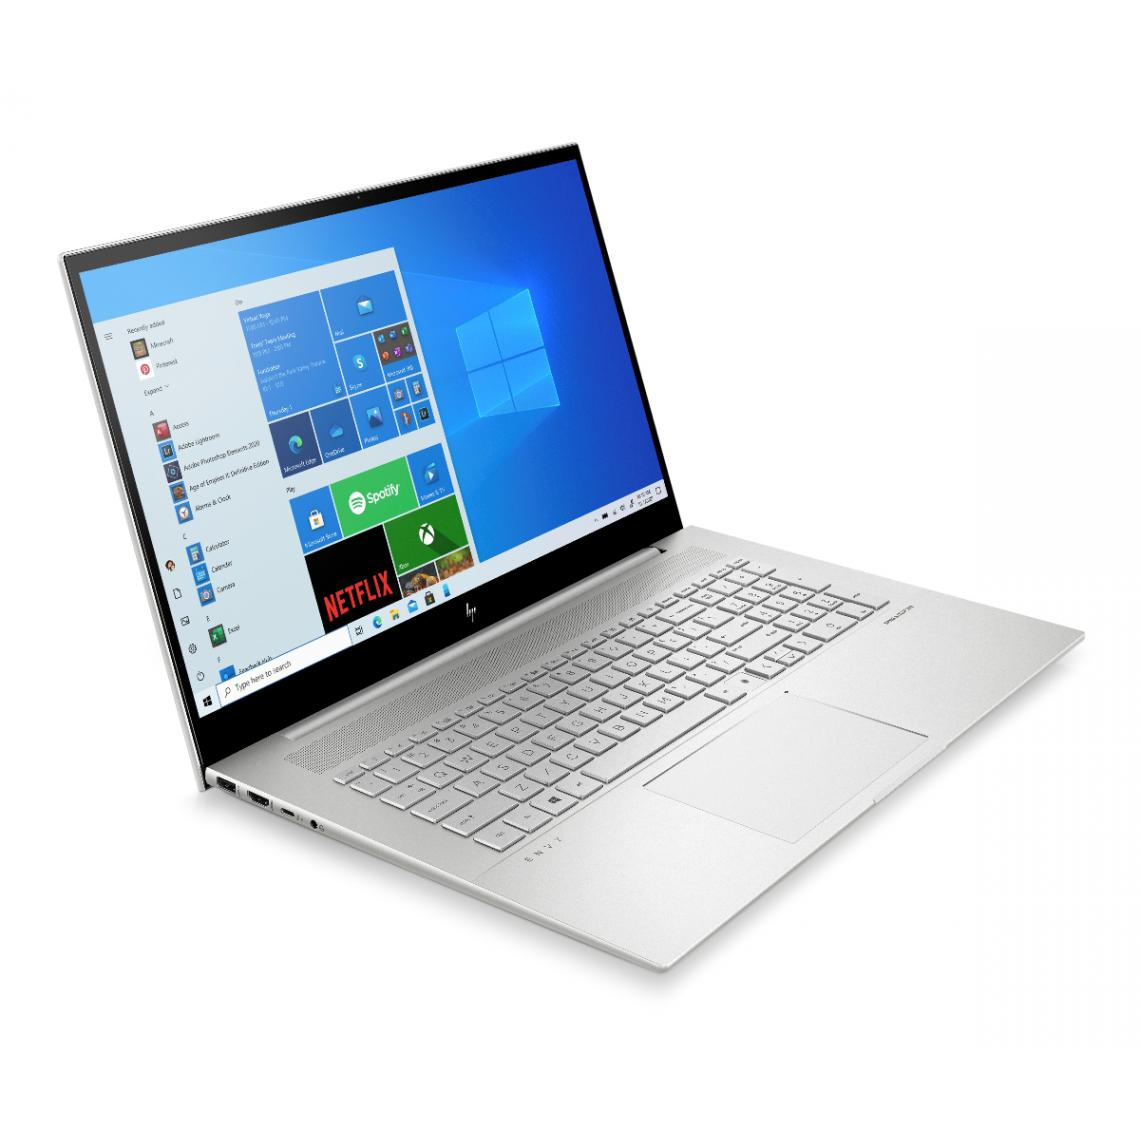 Hp Envy 17-ch0063nf - Argent